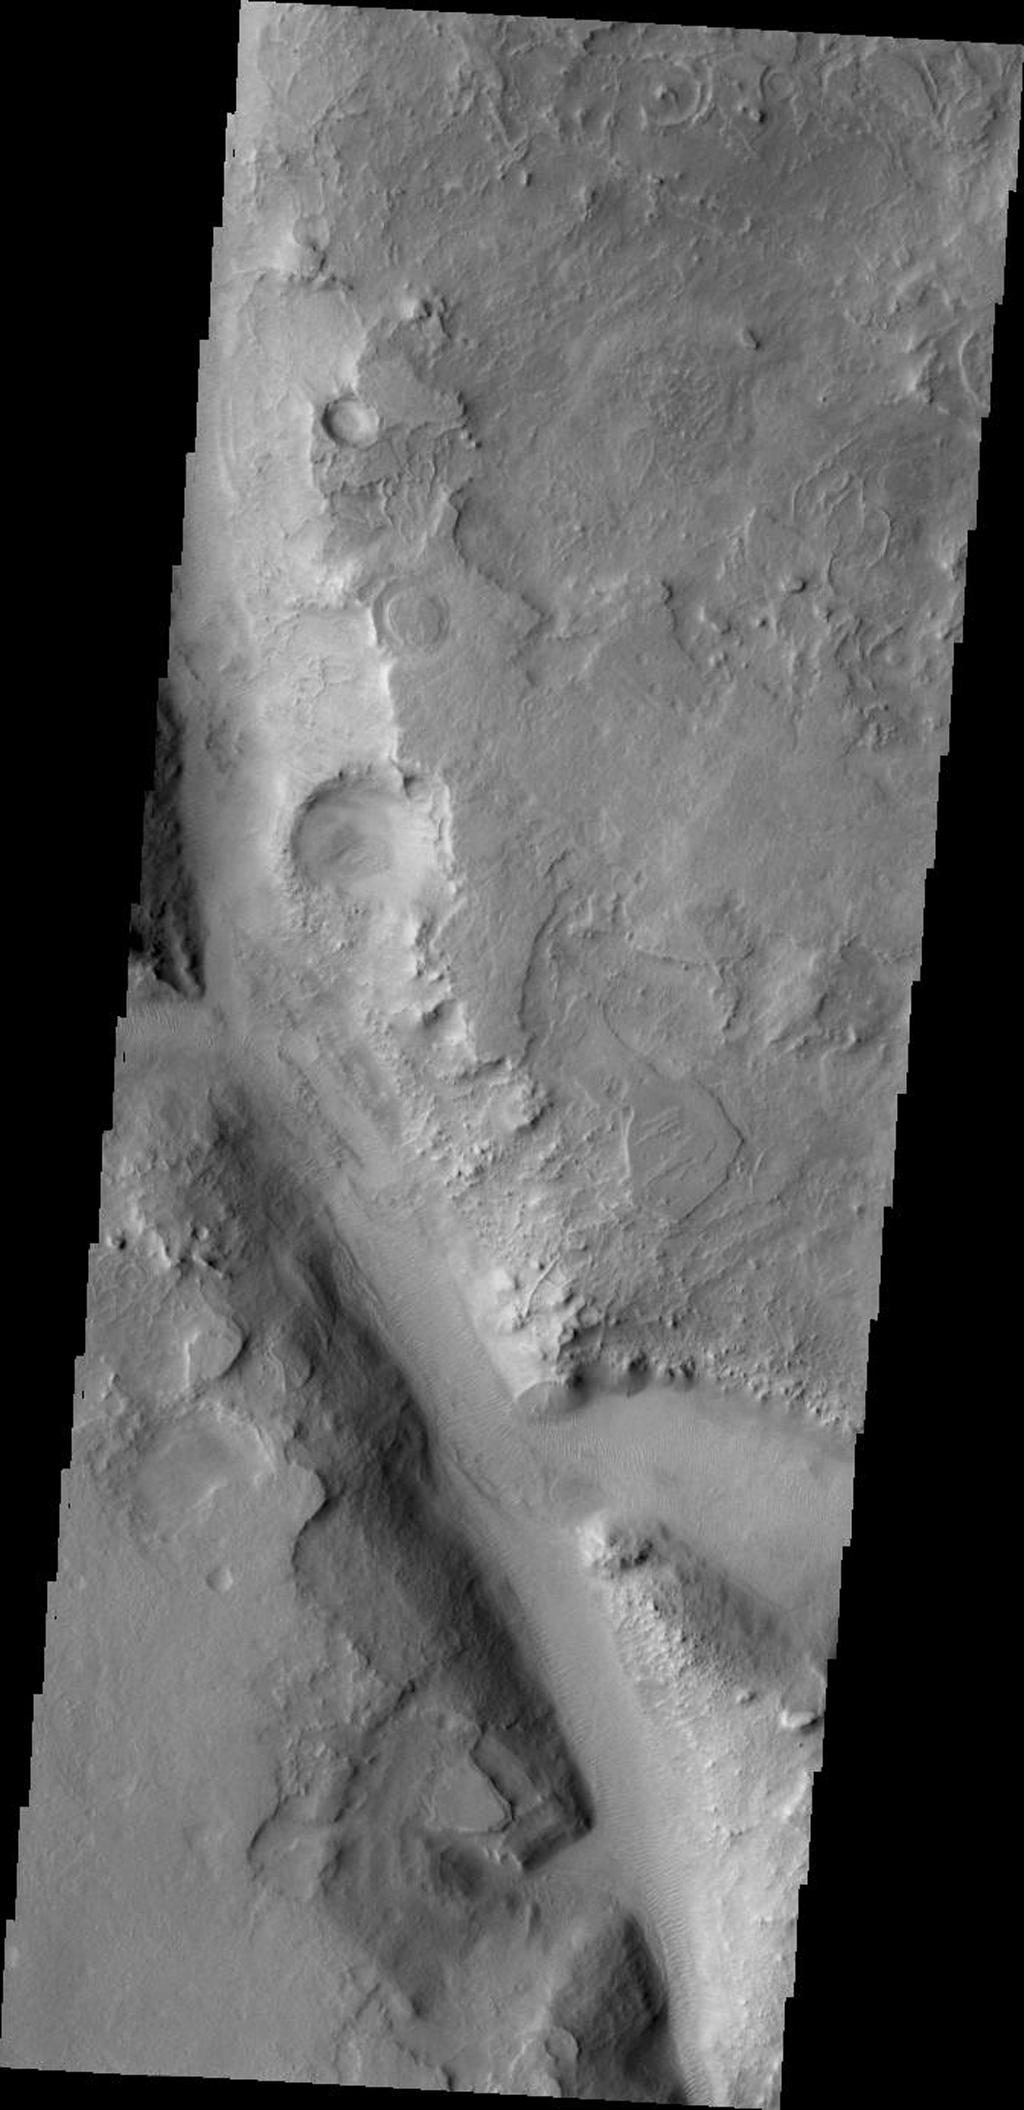 This image taken by NASA's 2001 Mars Odyssey shows just one of the many channels located in the northern part of Terra Sabaea which is heavily fractured and channeled, breaking up into a chaotic terrain as the elevation drops down to the northern plains.